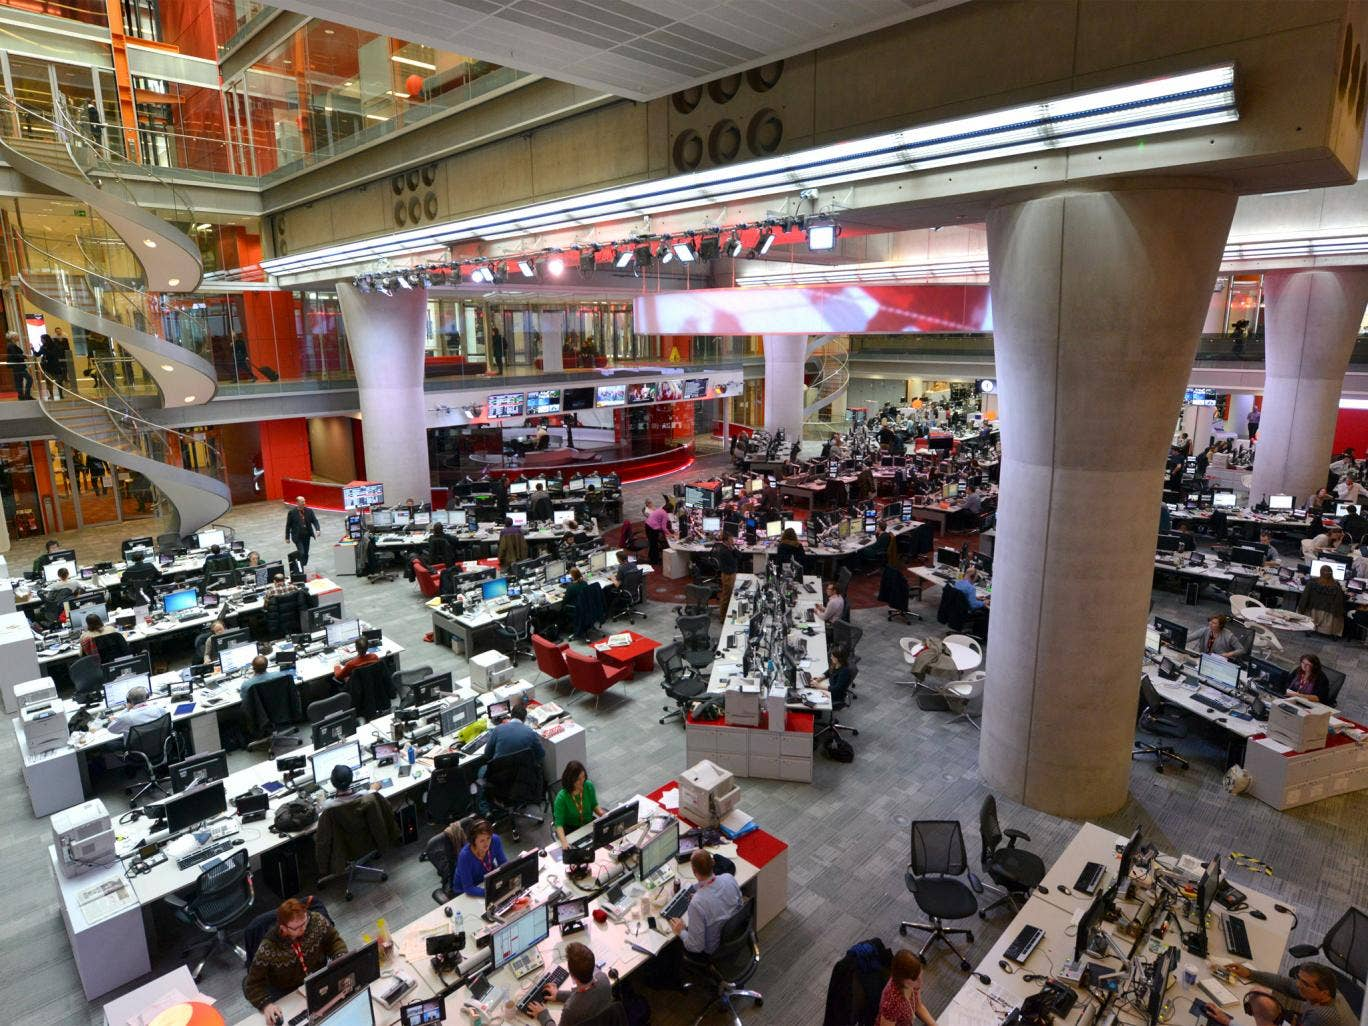 Cultural force: the BBC News room at Broadcasting House, in London, one area of democratising excellence the corporation should continue to focus on, according to Grade